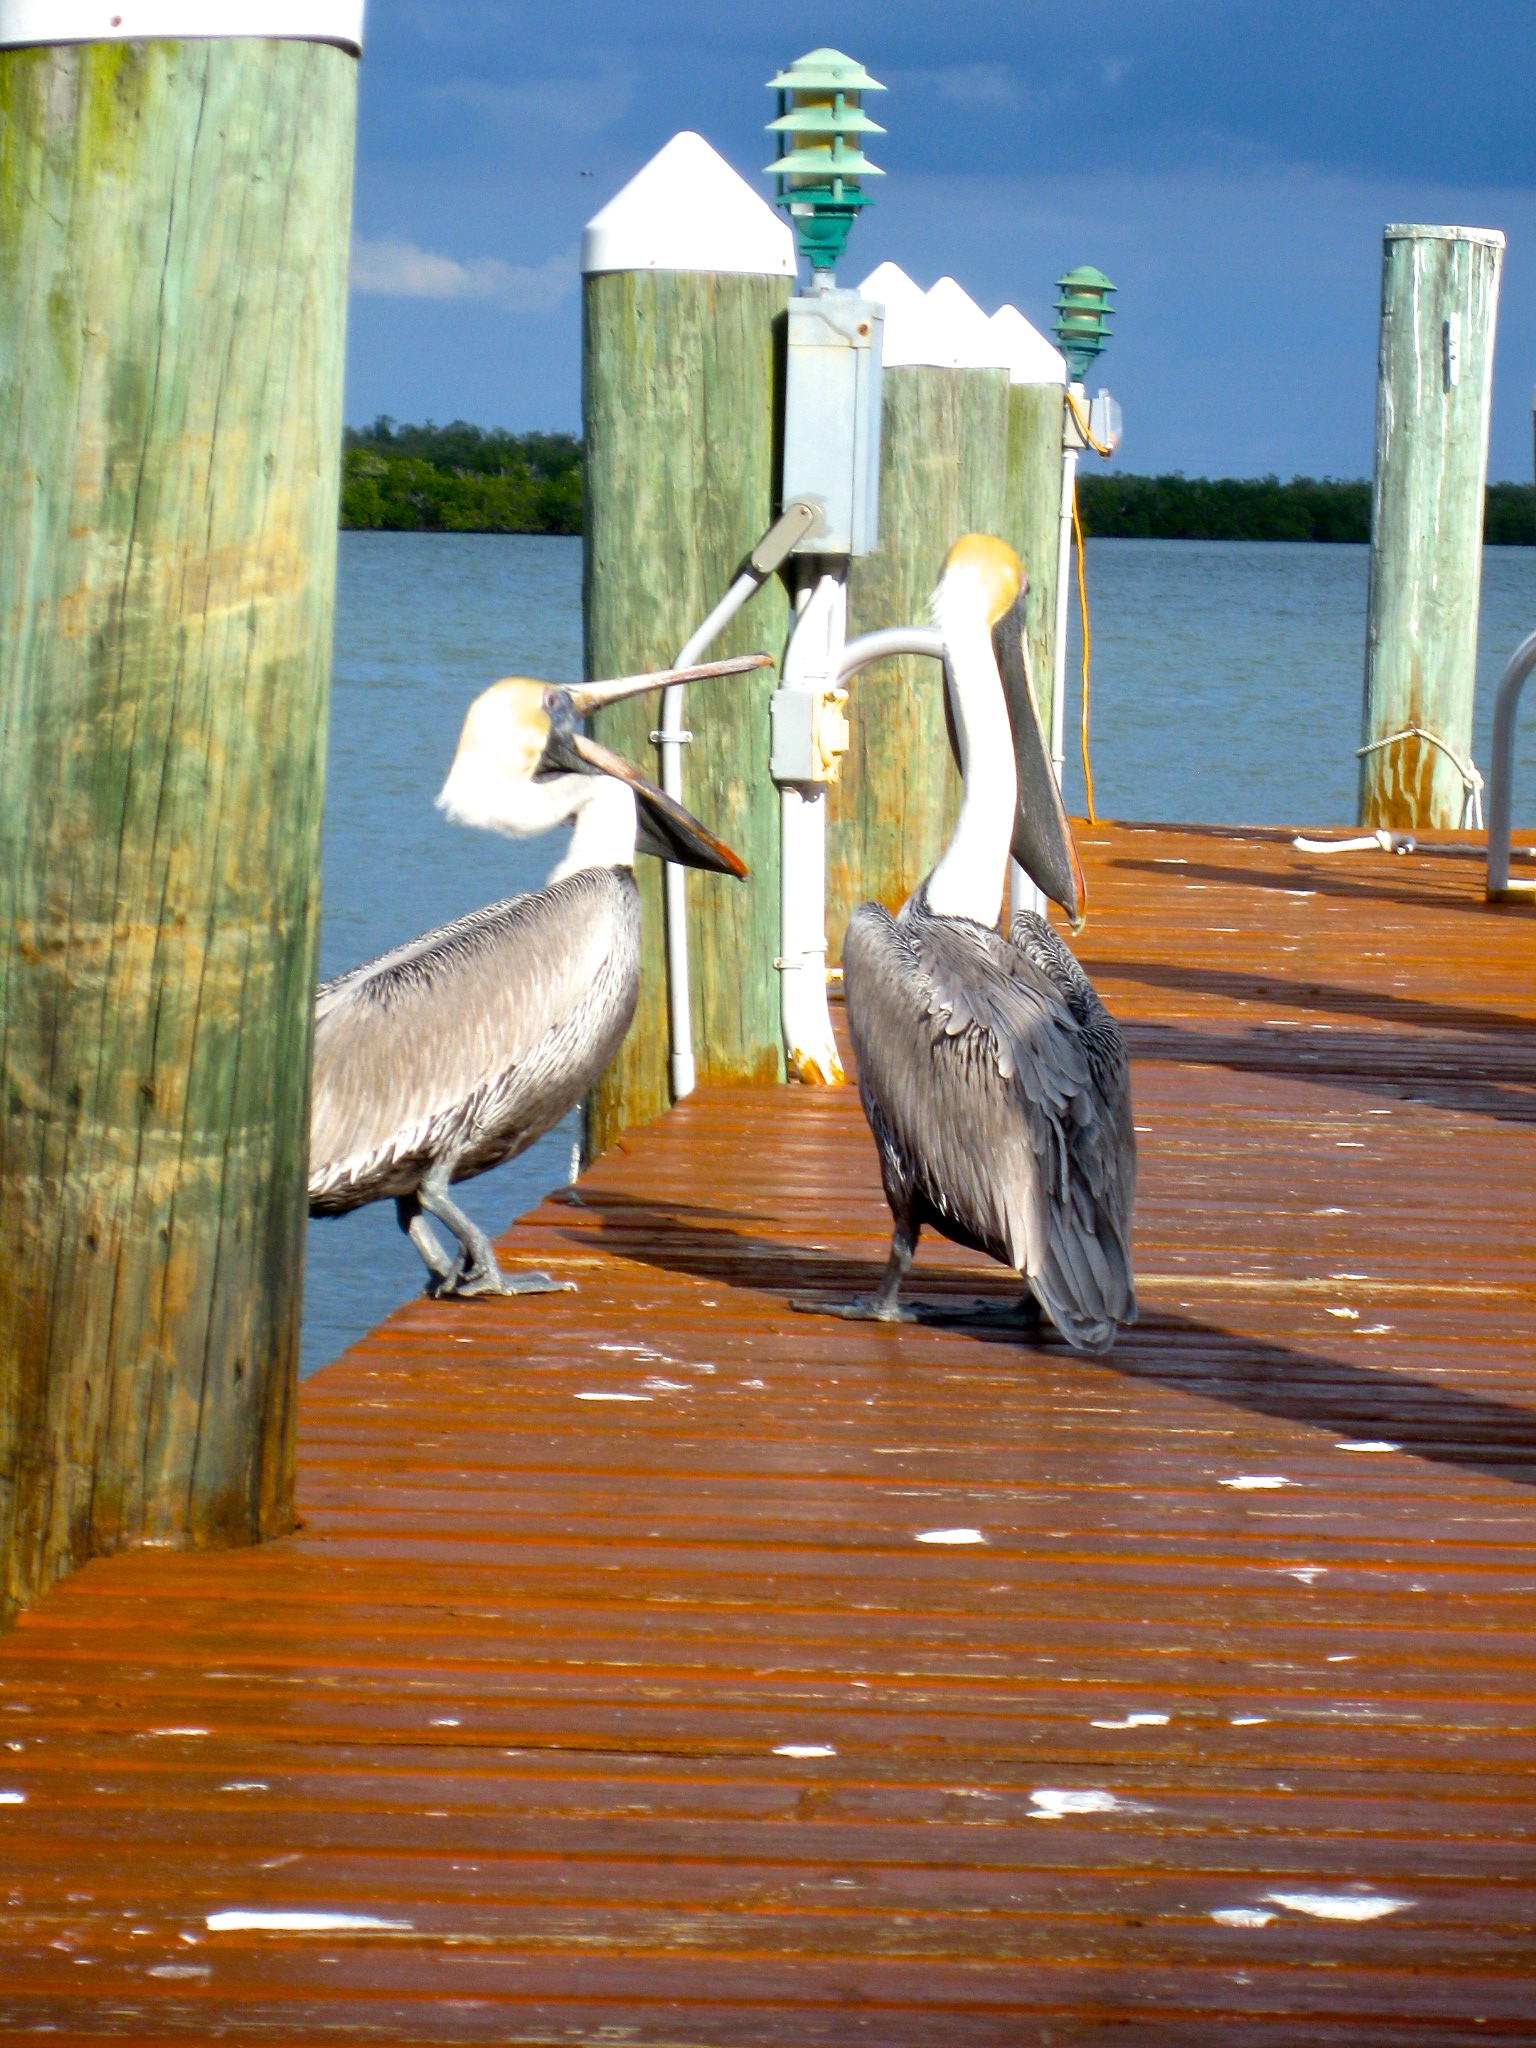 Two pelicans on a pier